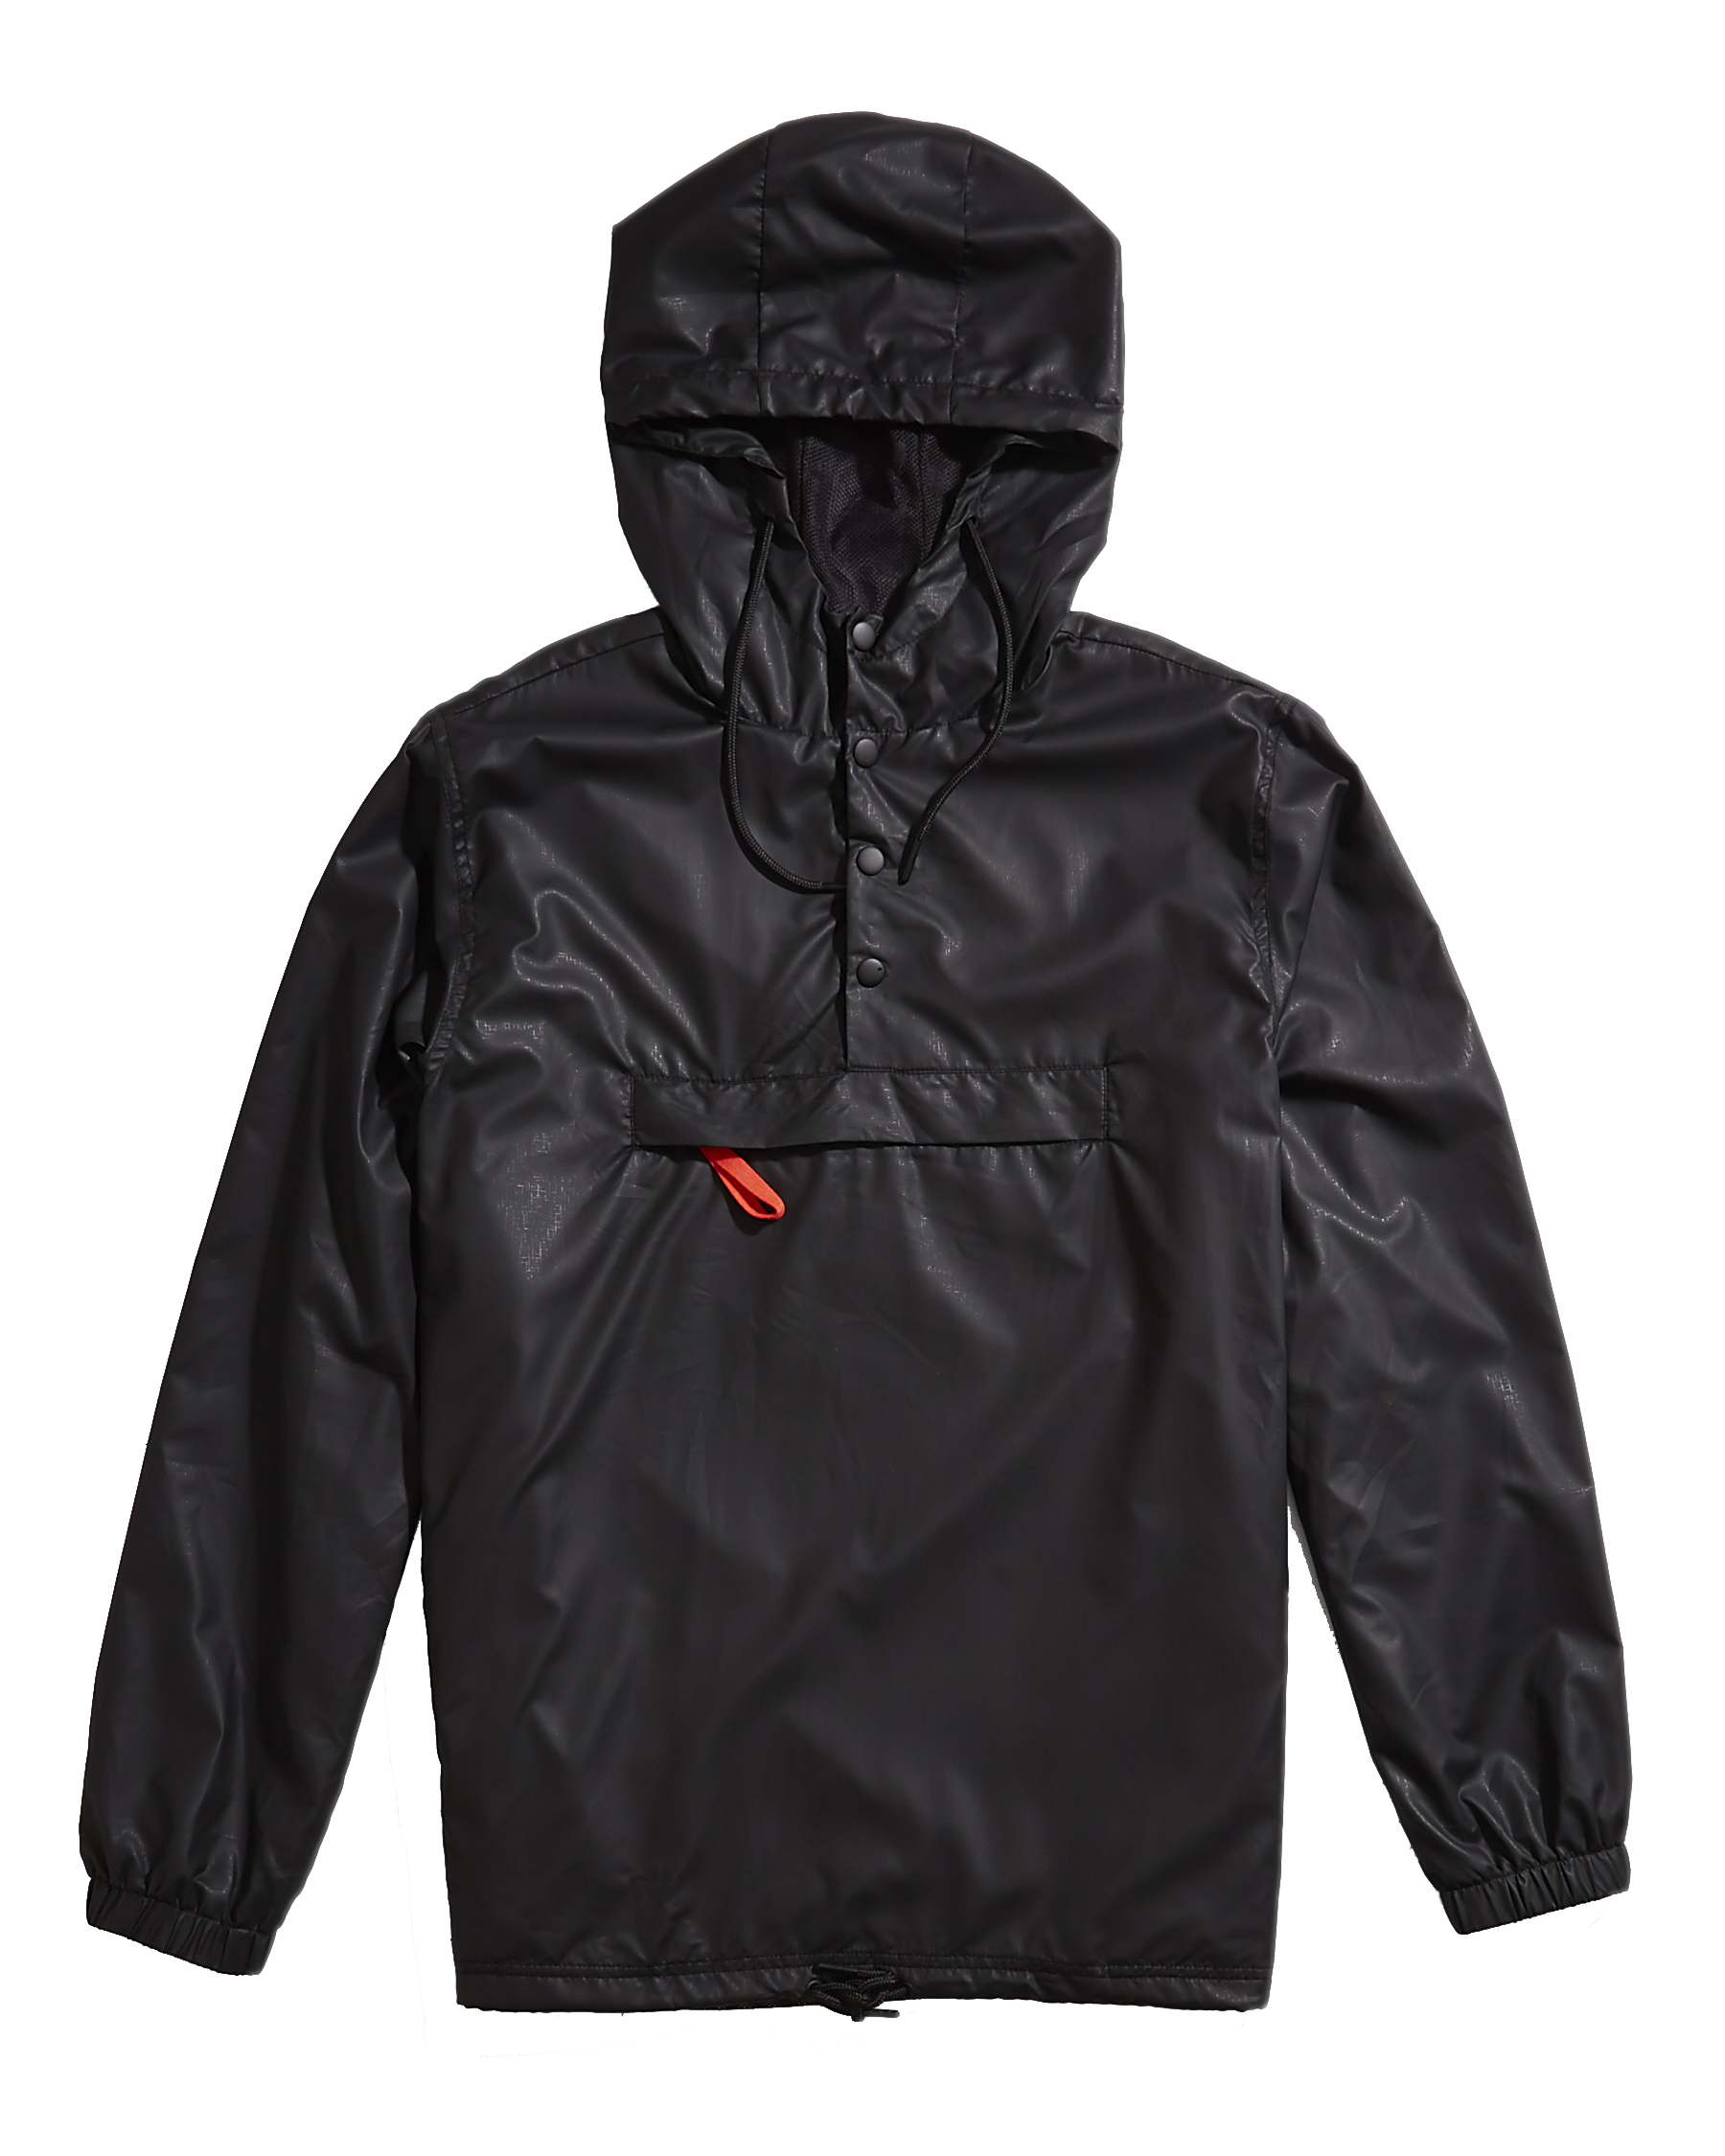 Publish x JackThreads Carden Anorak_Black Photo Credit JackThreads.jpg